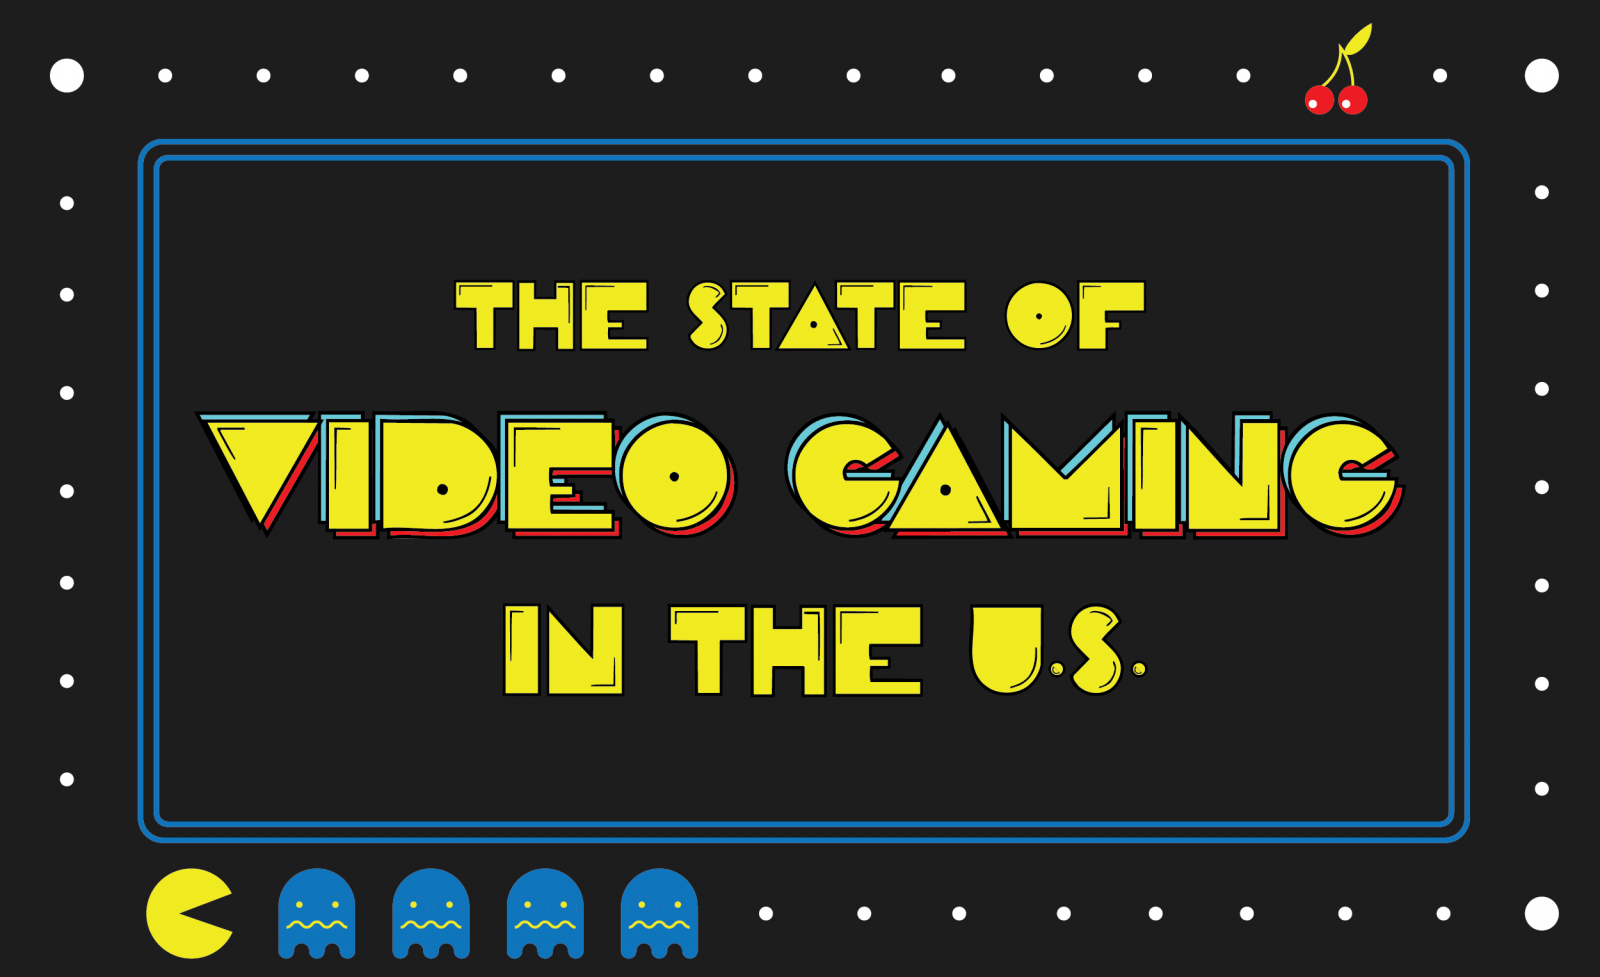 The State of Video Gaming in the U.S.